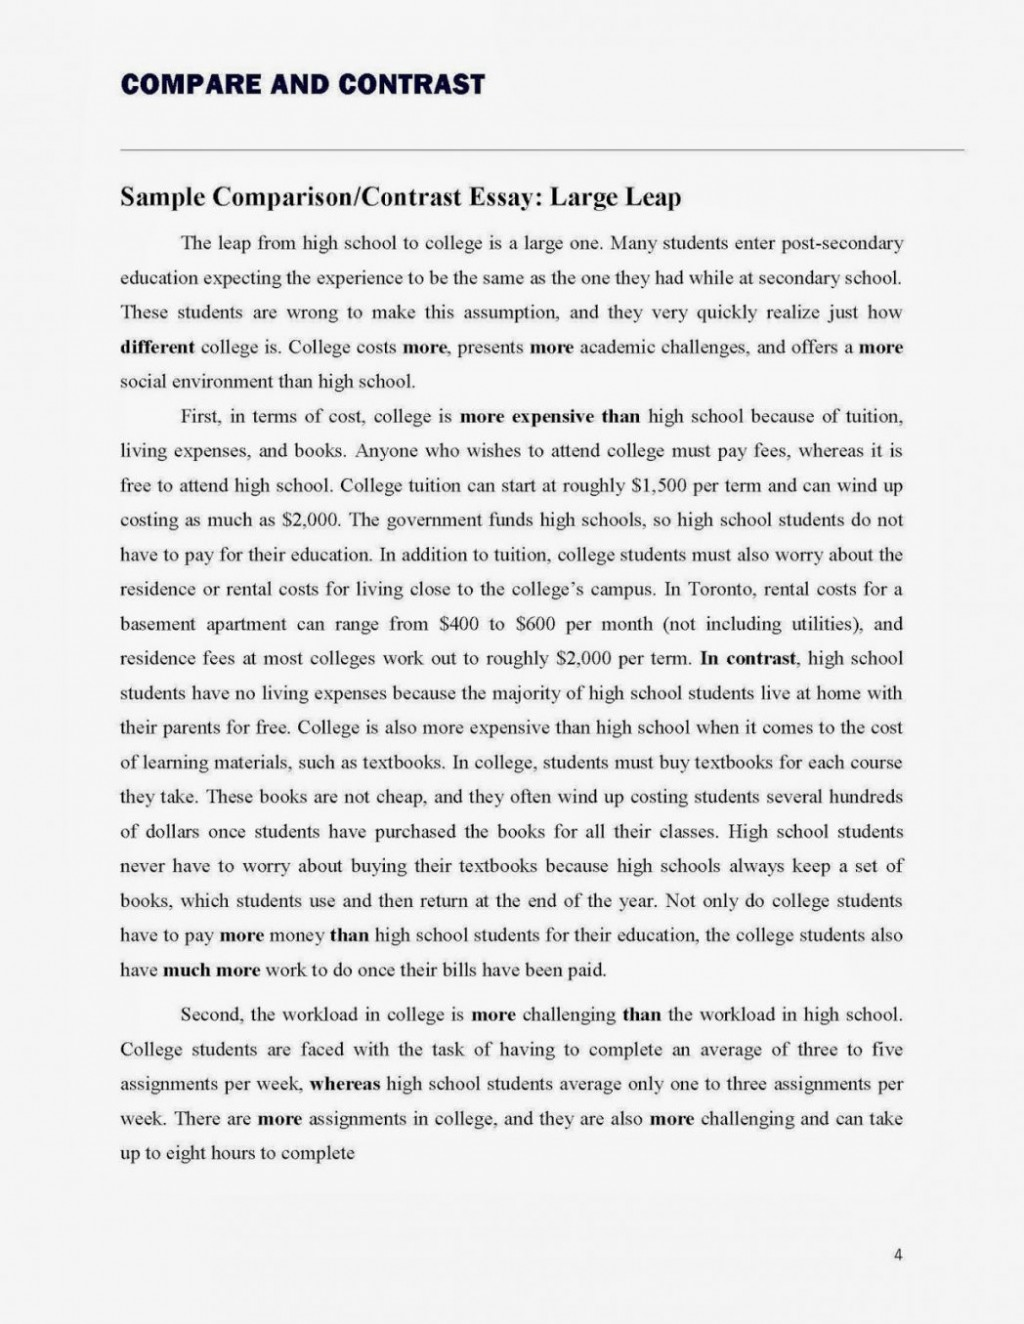 016 Essay Example How To Write Compare And Contrast On High School College Level Topics Structure Format Transitions Prompts Outline Introduction Template Examples Striking Block Method Conclusion Large